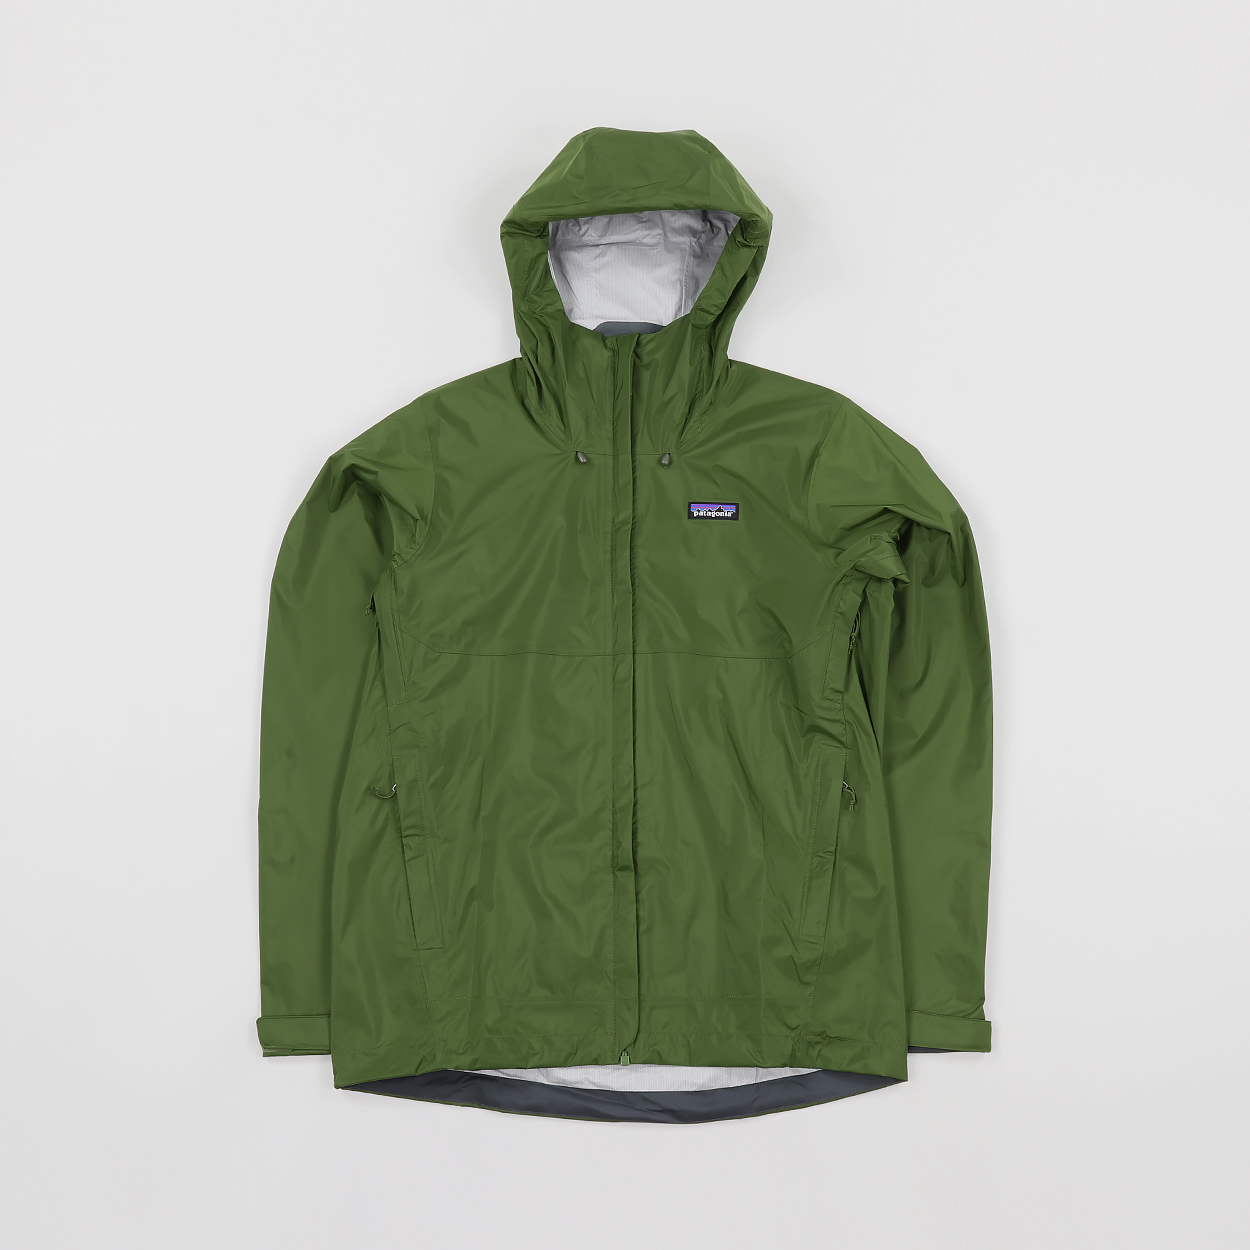 Patagonia Technical Outdoor Torrentshell Jacket Sprouted Green £77.00 228a5630b